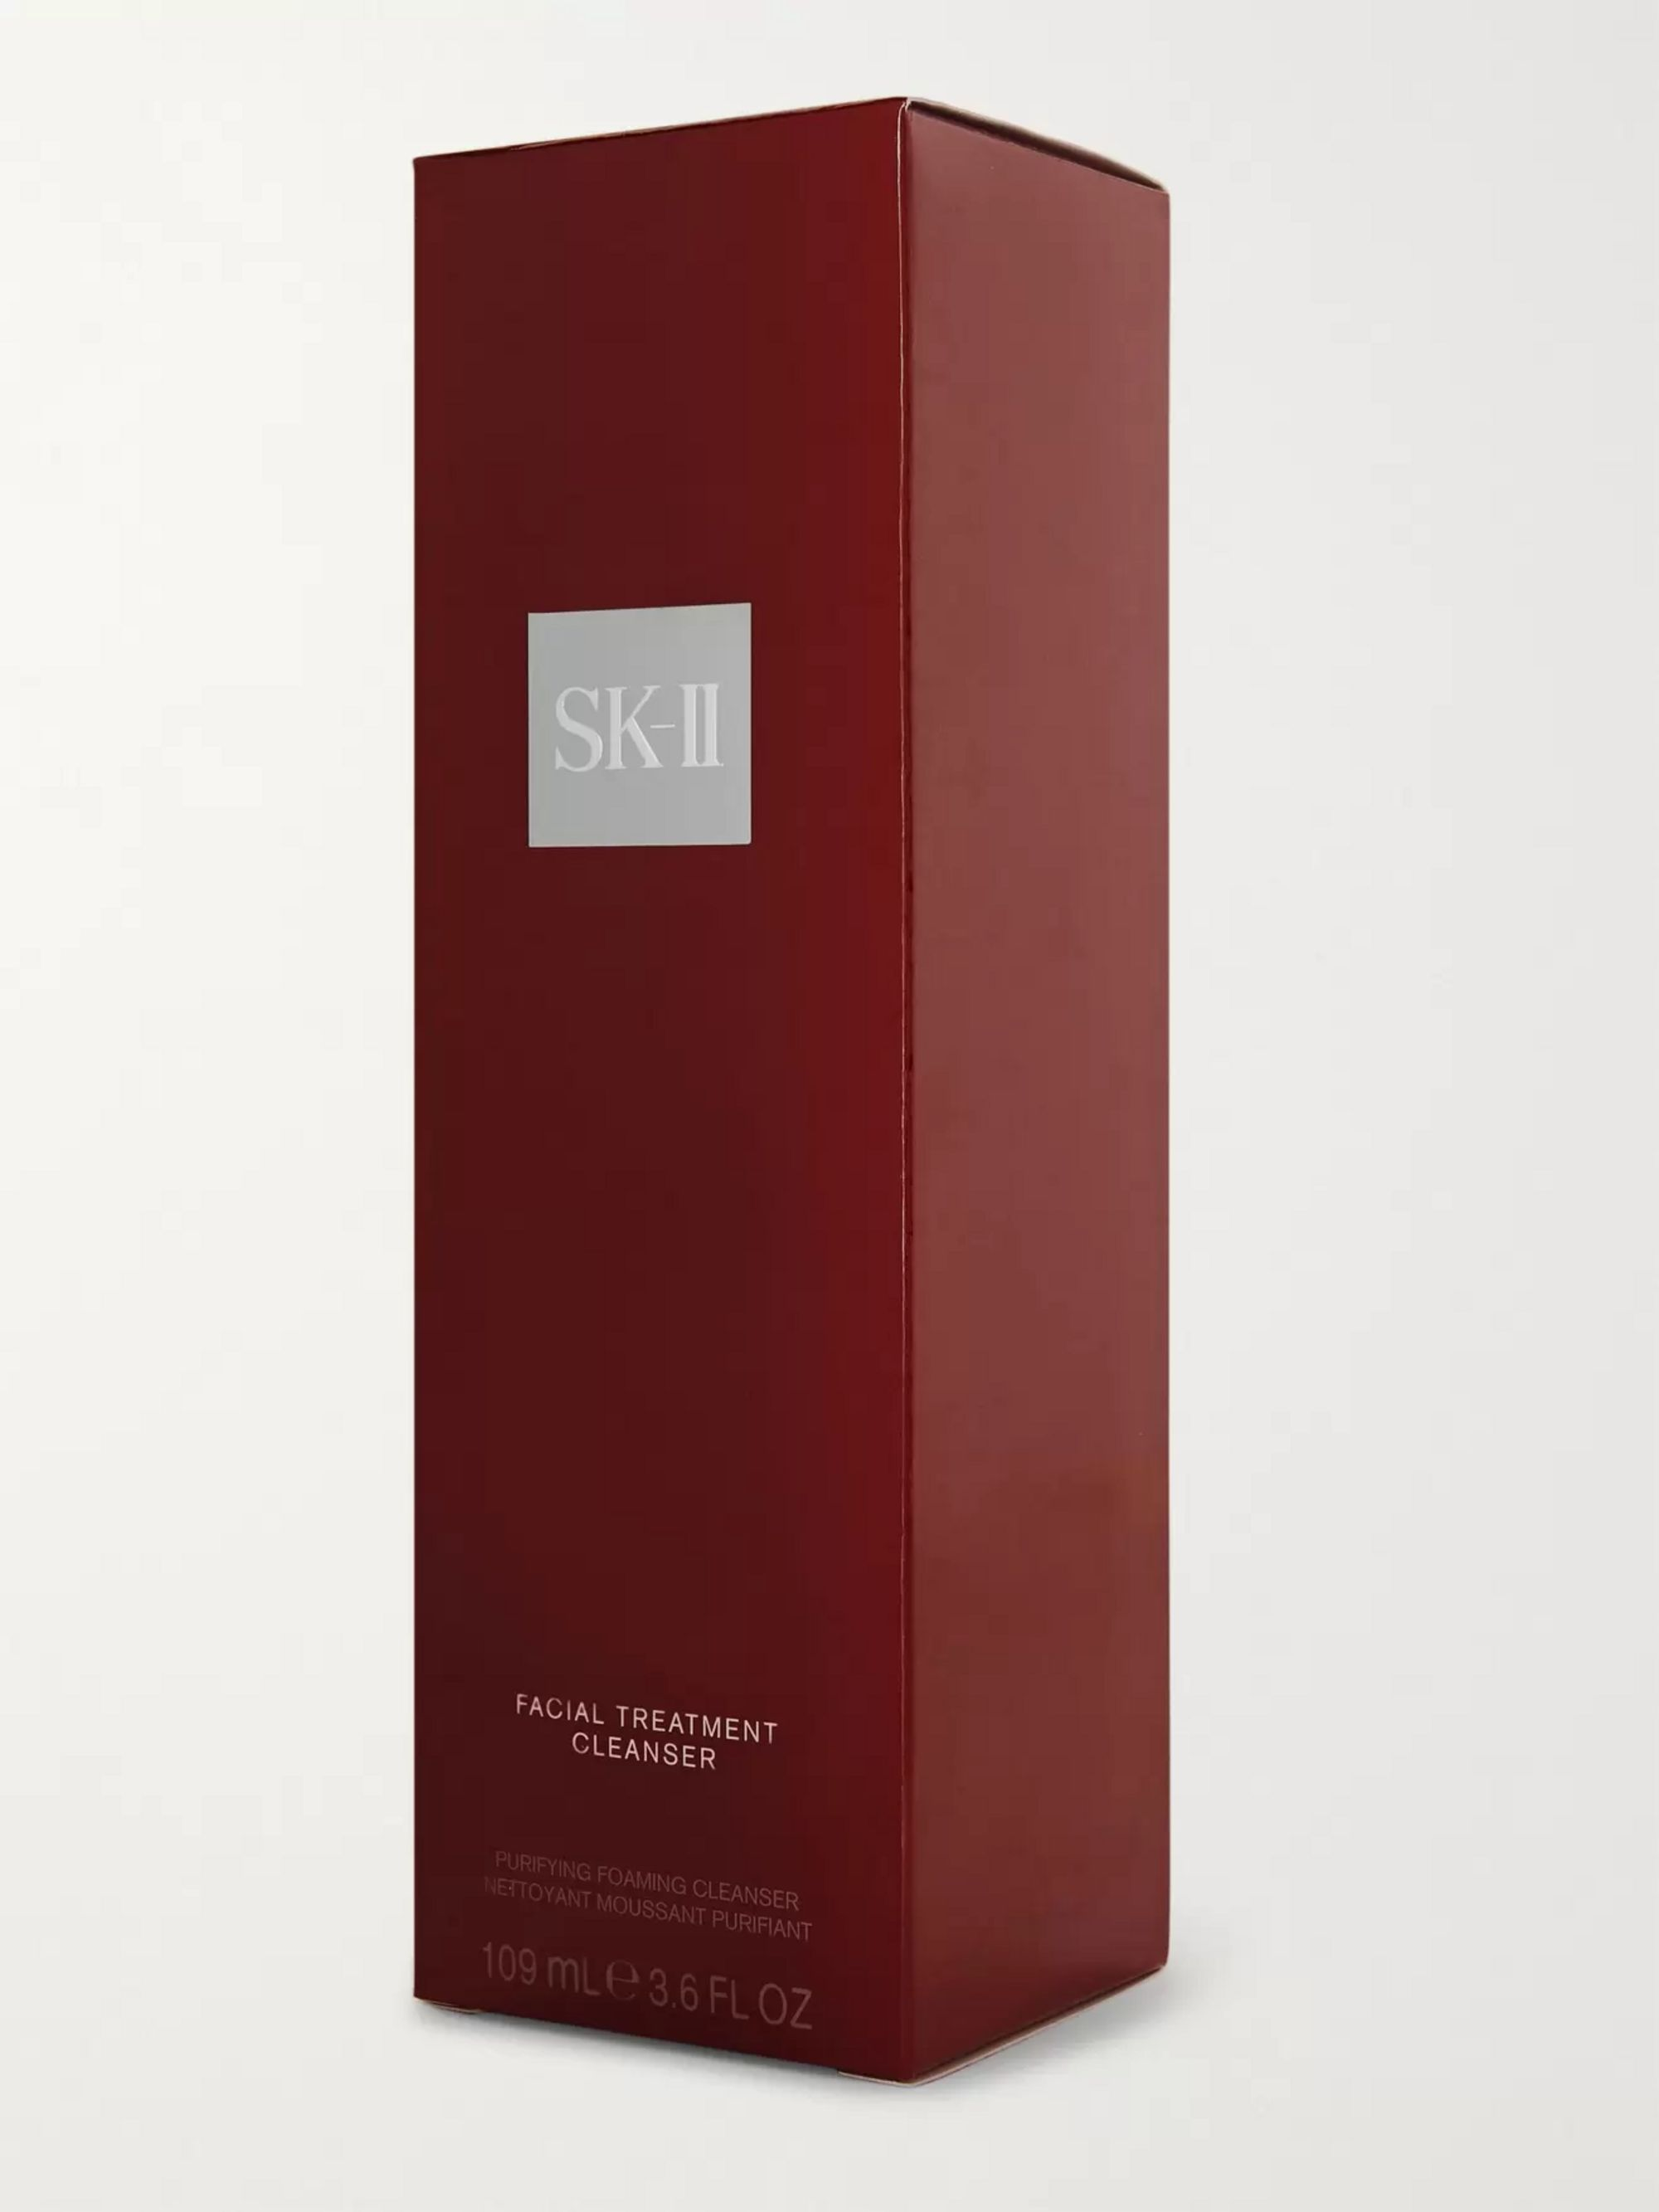 SK-II Facial Treatment Cleanser, 109ml